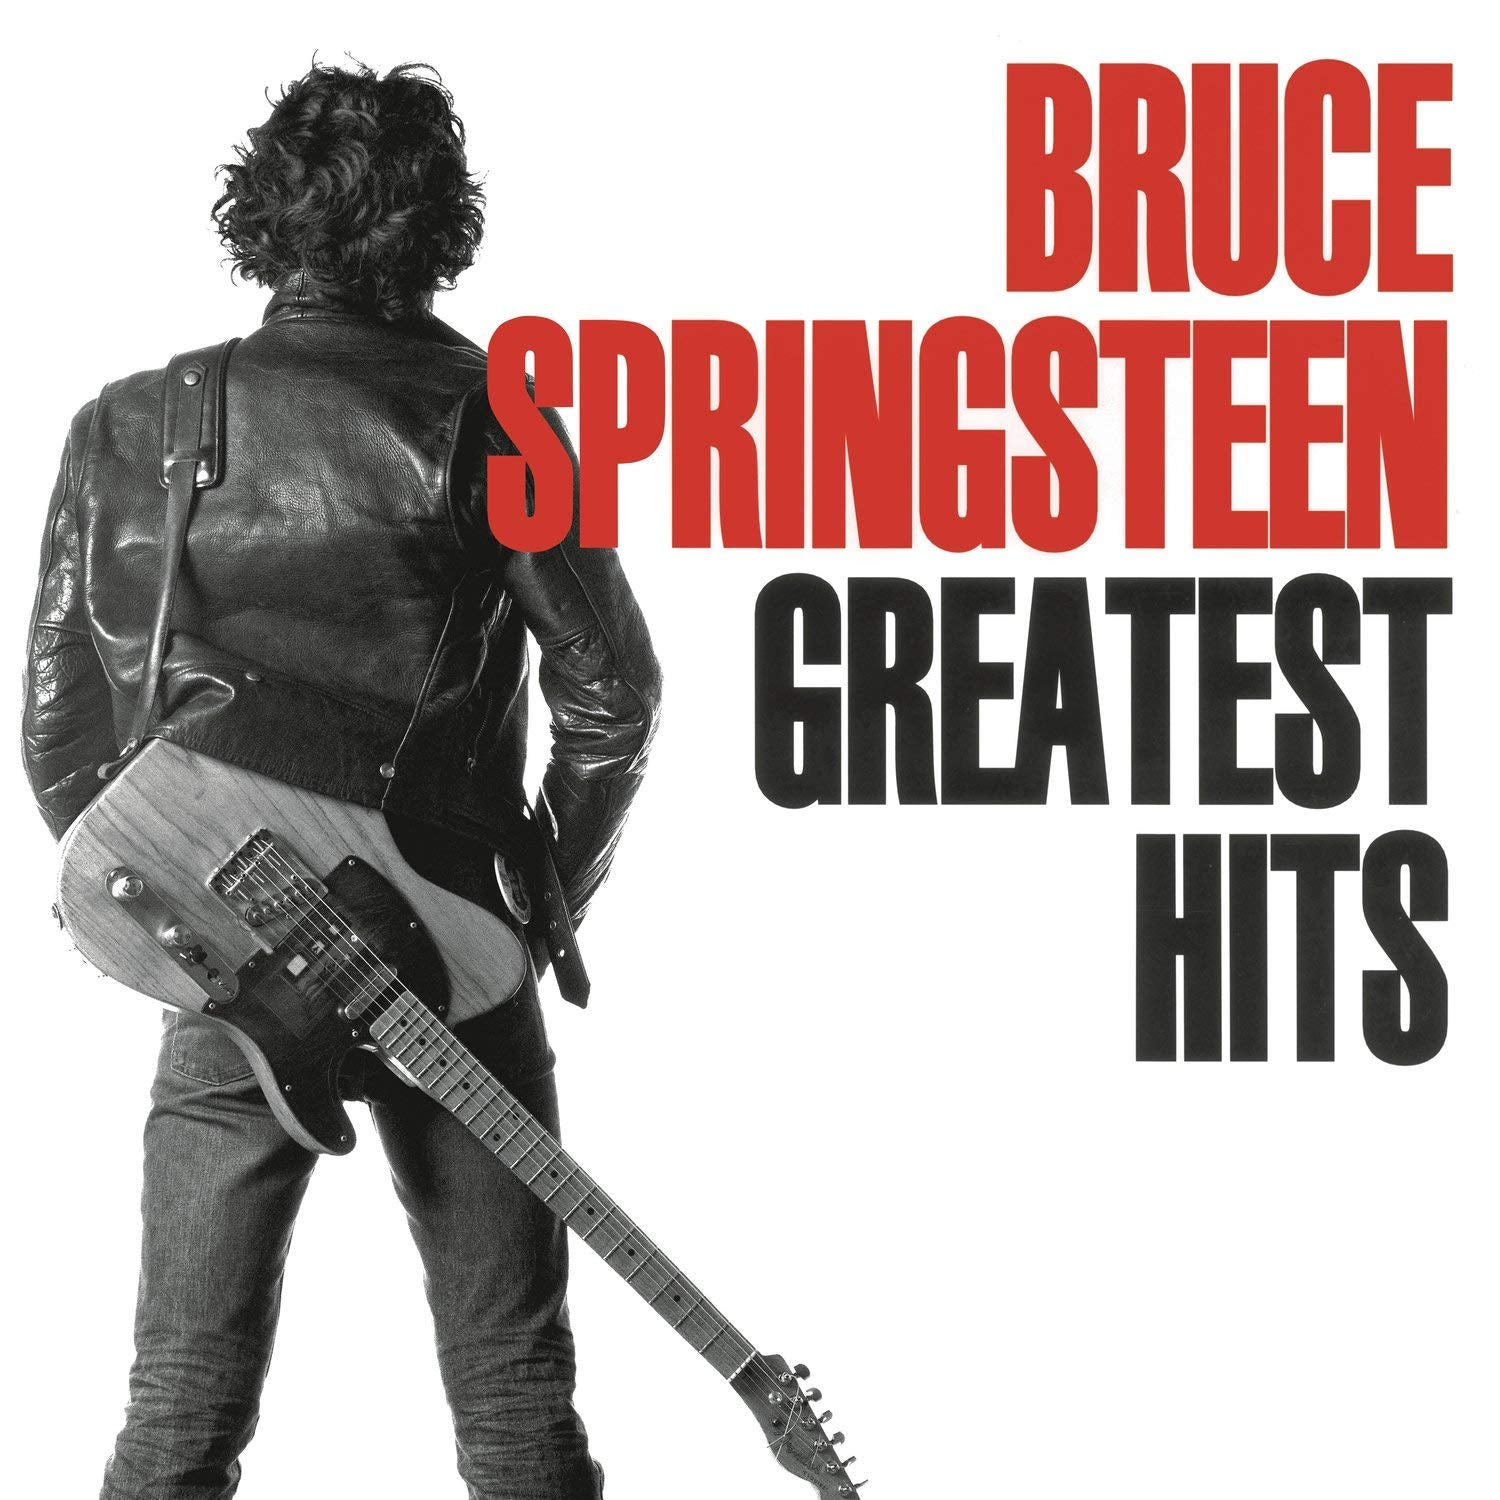 Greatest Hits - Bruce Springsteen [VINYL]